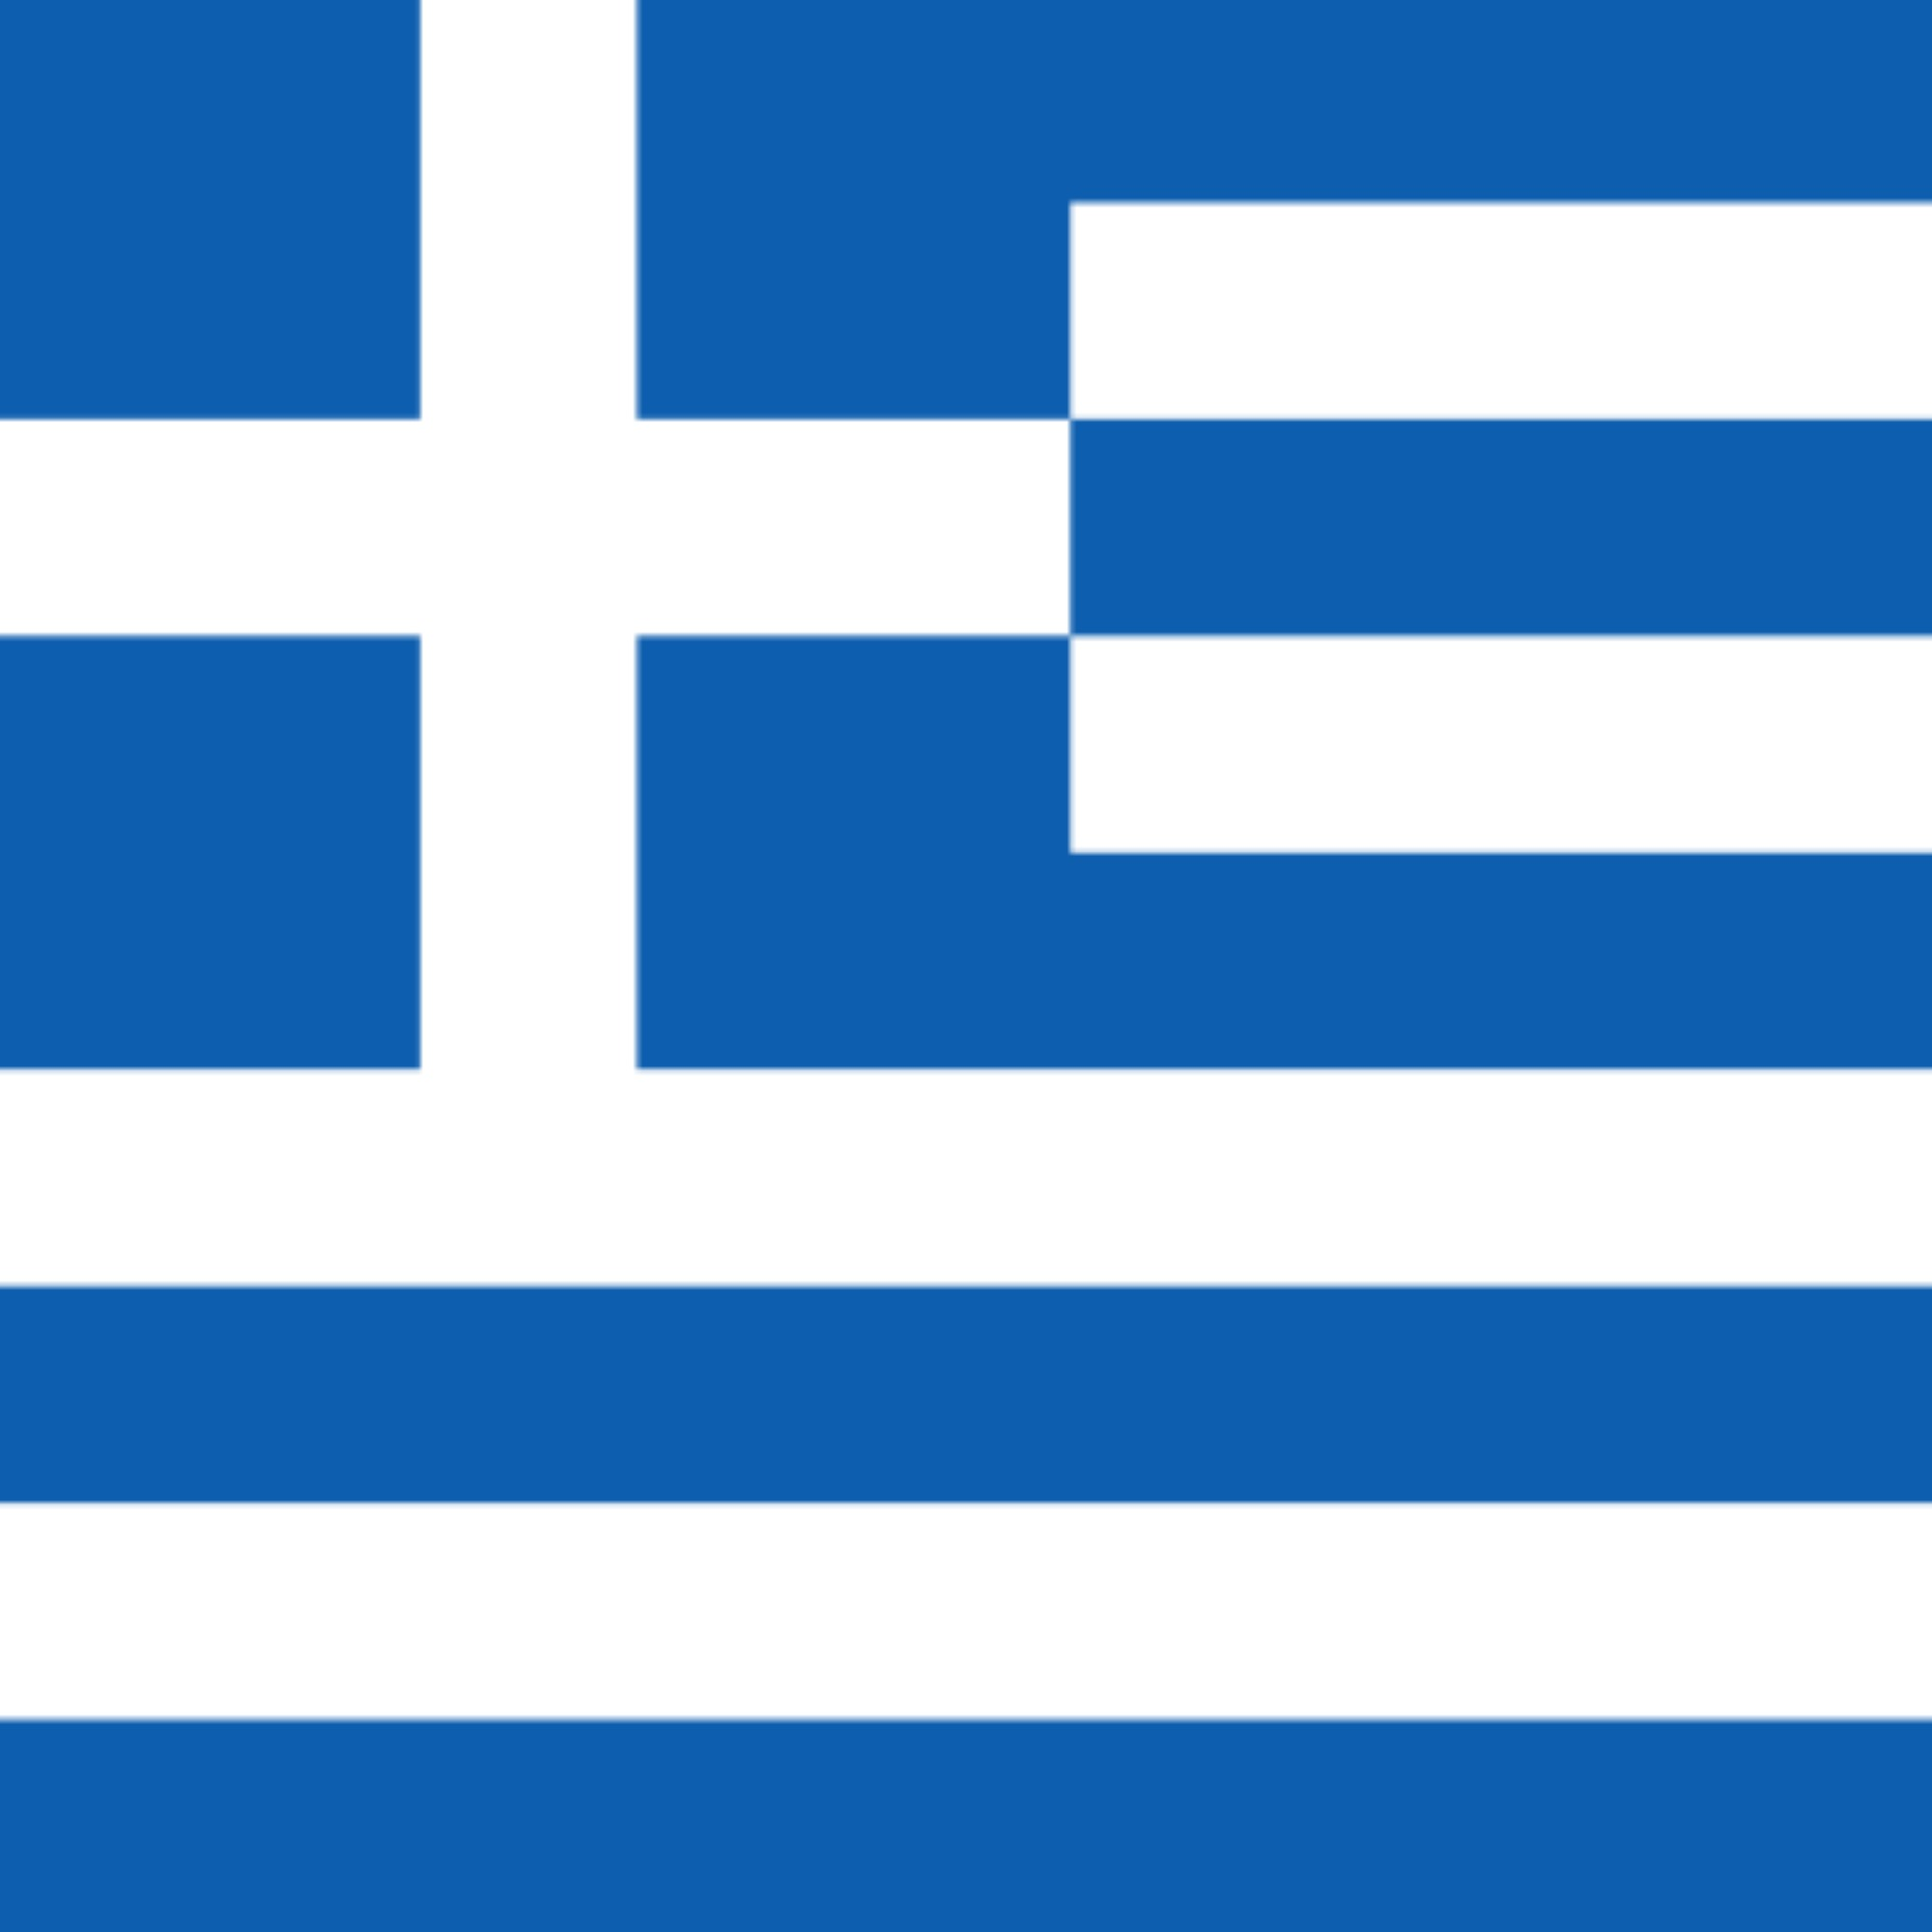 Honorary Consulate of Greece (Elx)